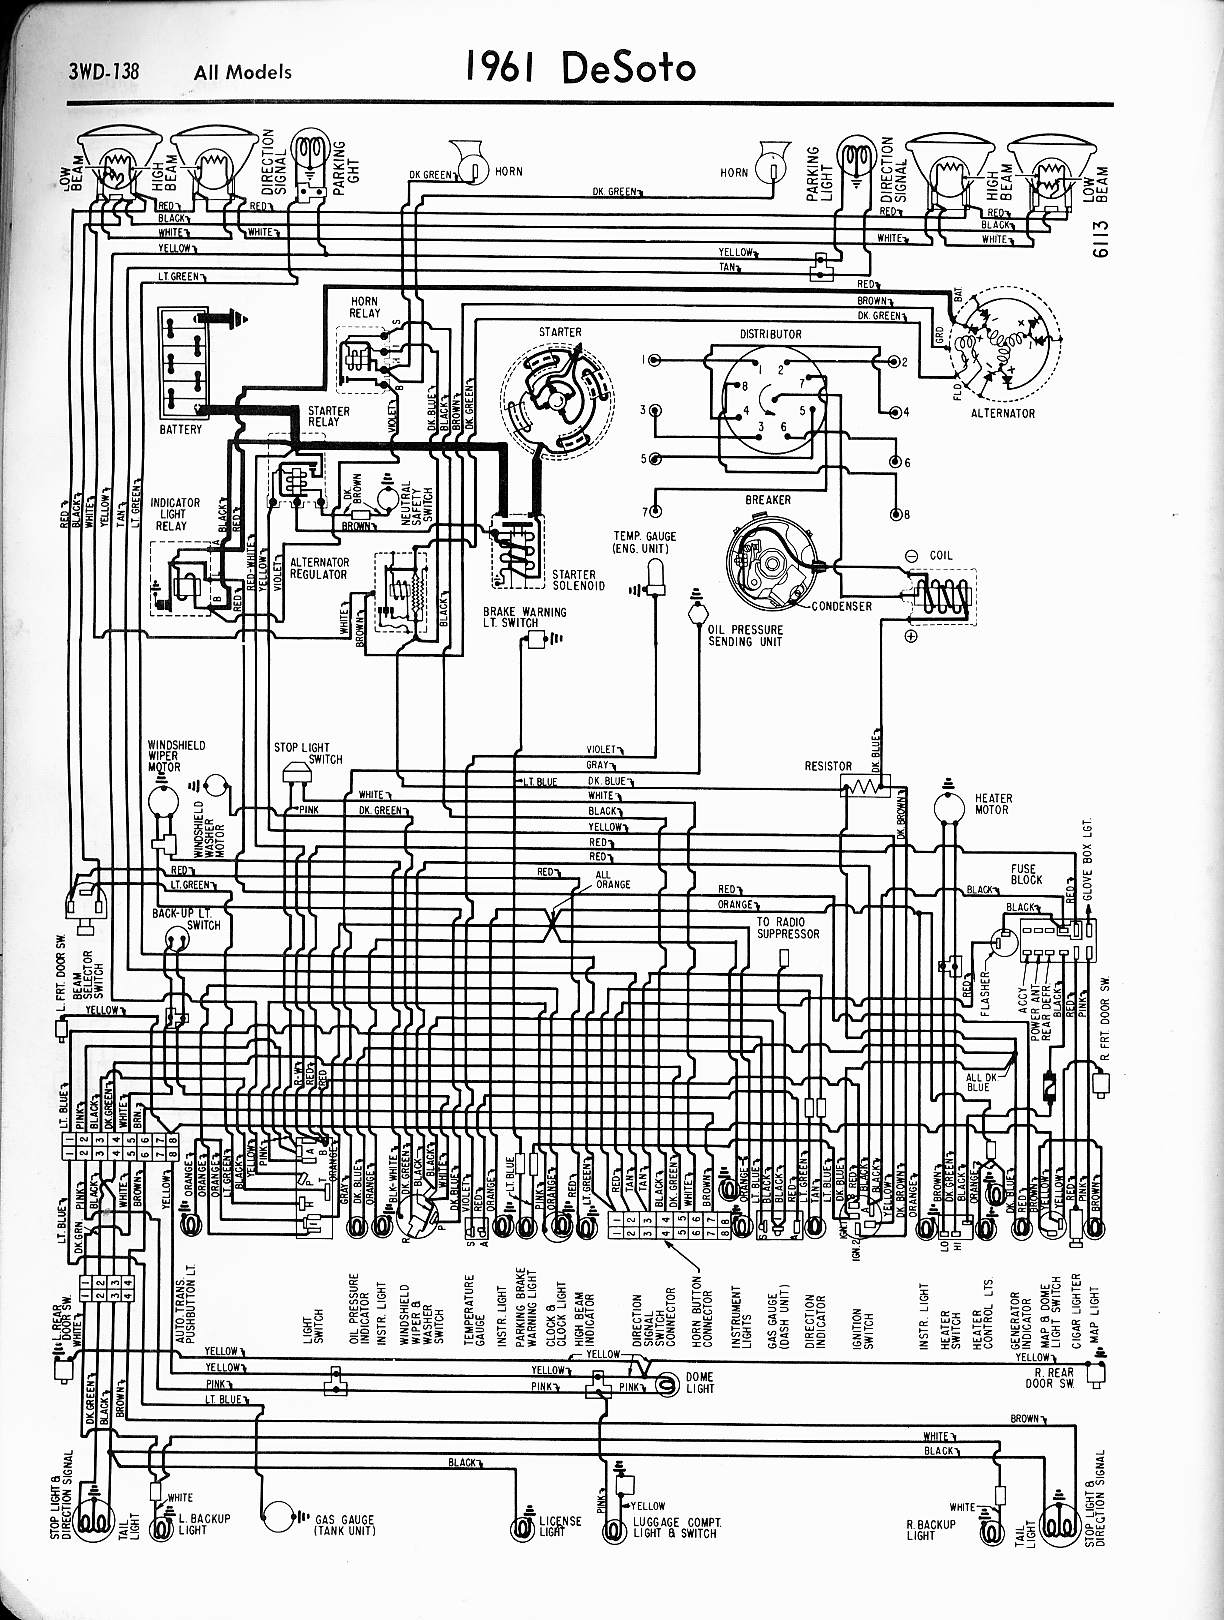 1959 Desoto Wiring Diagram FULL HD Version Wiring Diagram - LAWN-DIAGRAM .EXPERTSUNIVERSITY.ITDiagram Database